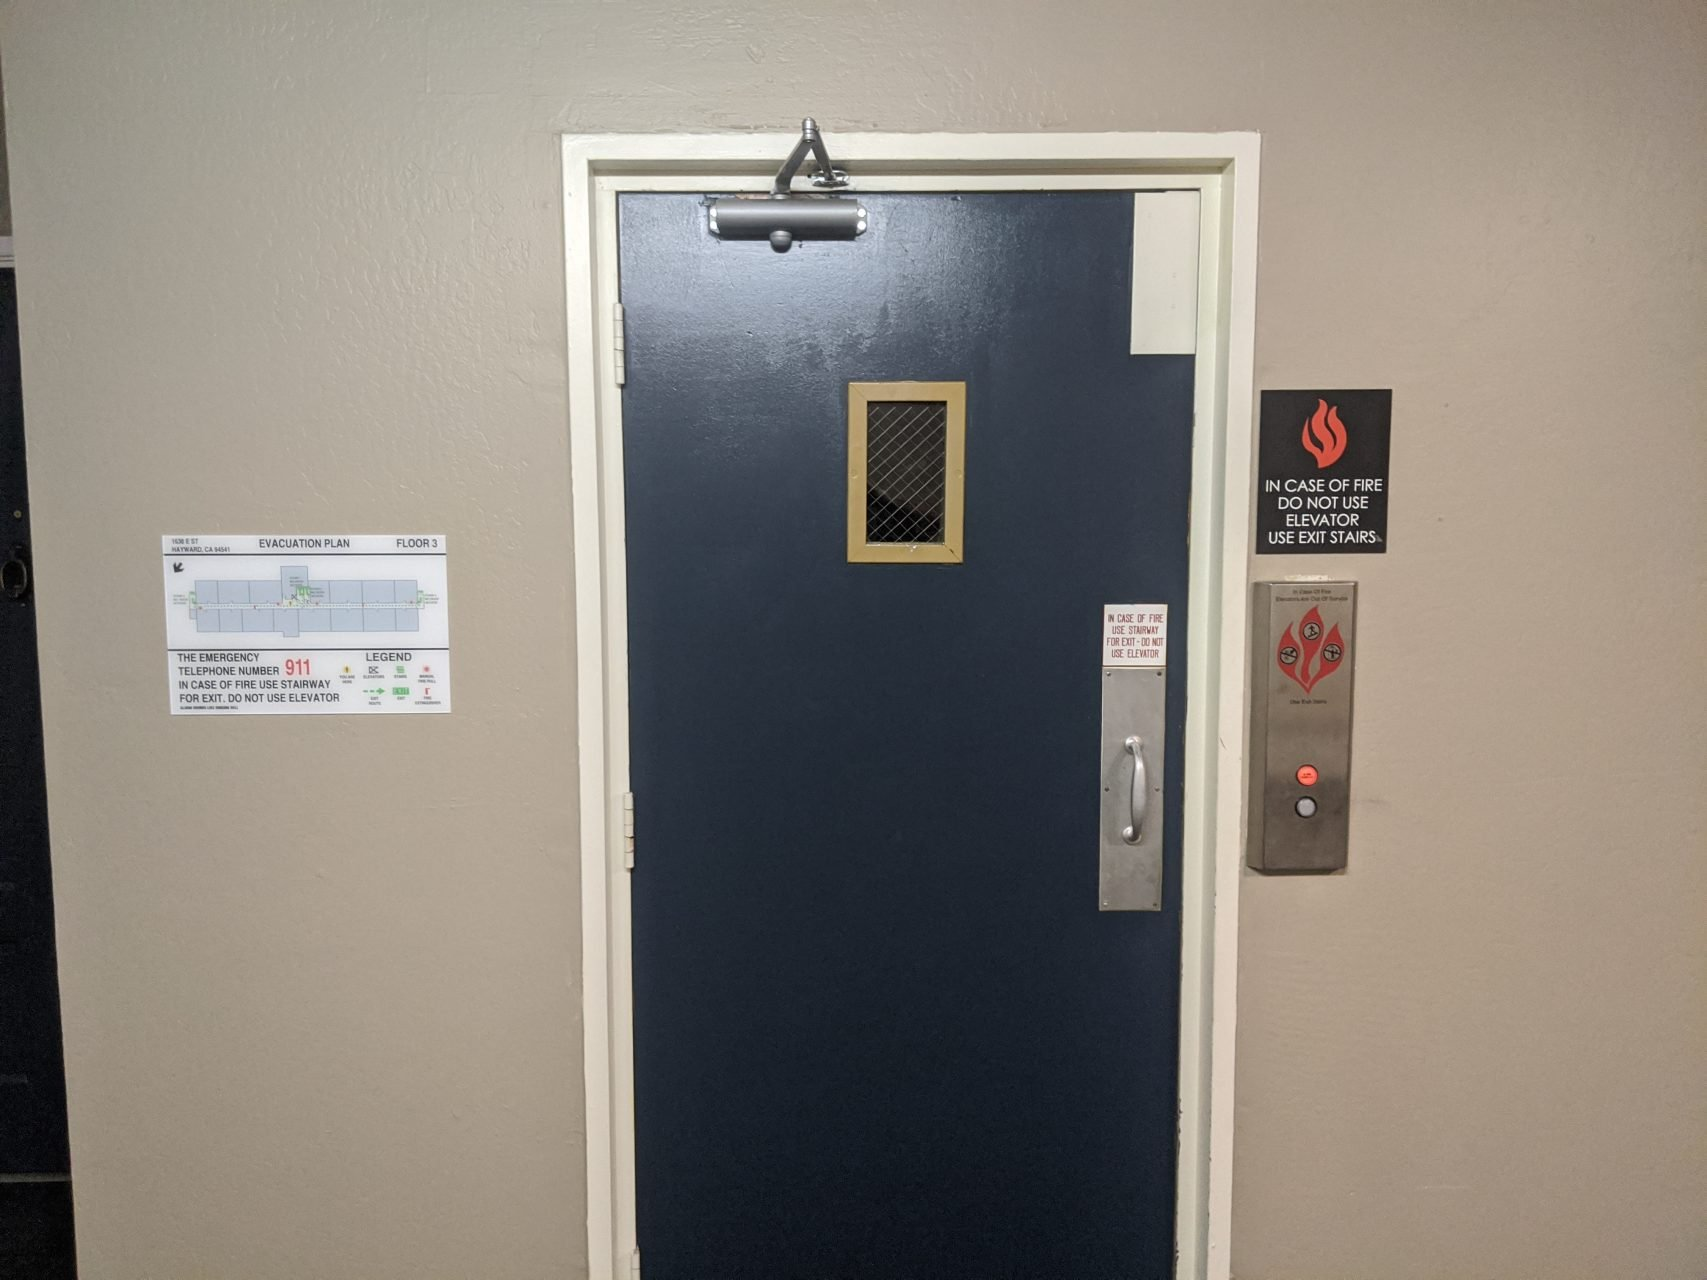 Fire Evecuation Signs - Sequoia Signs Fairfield